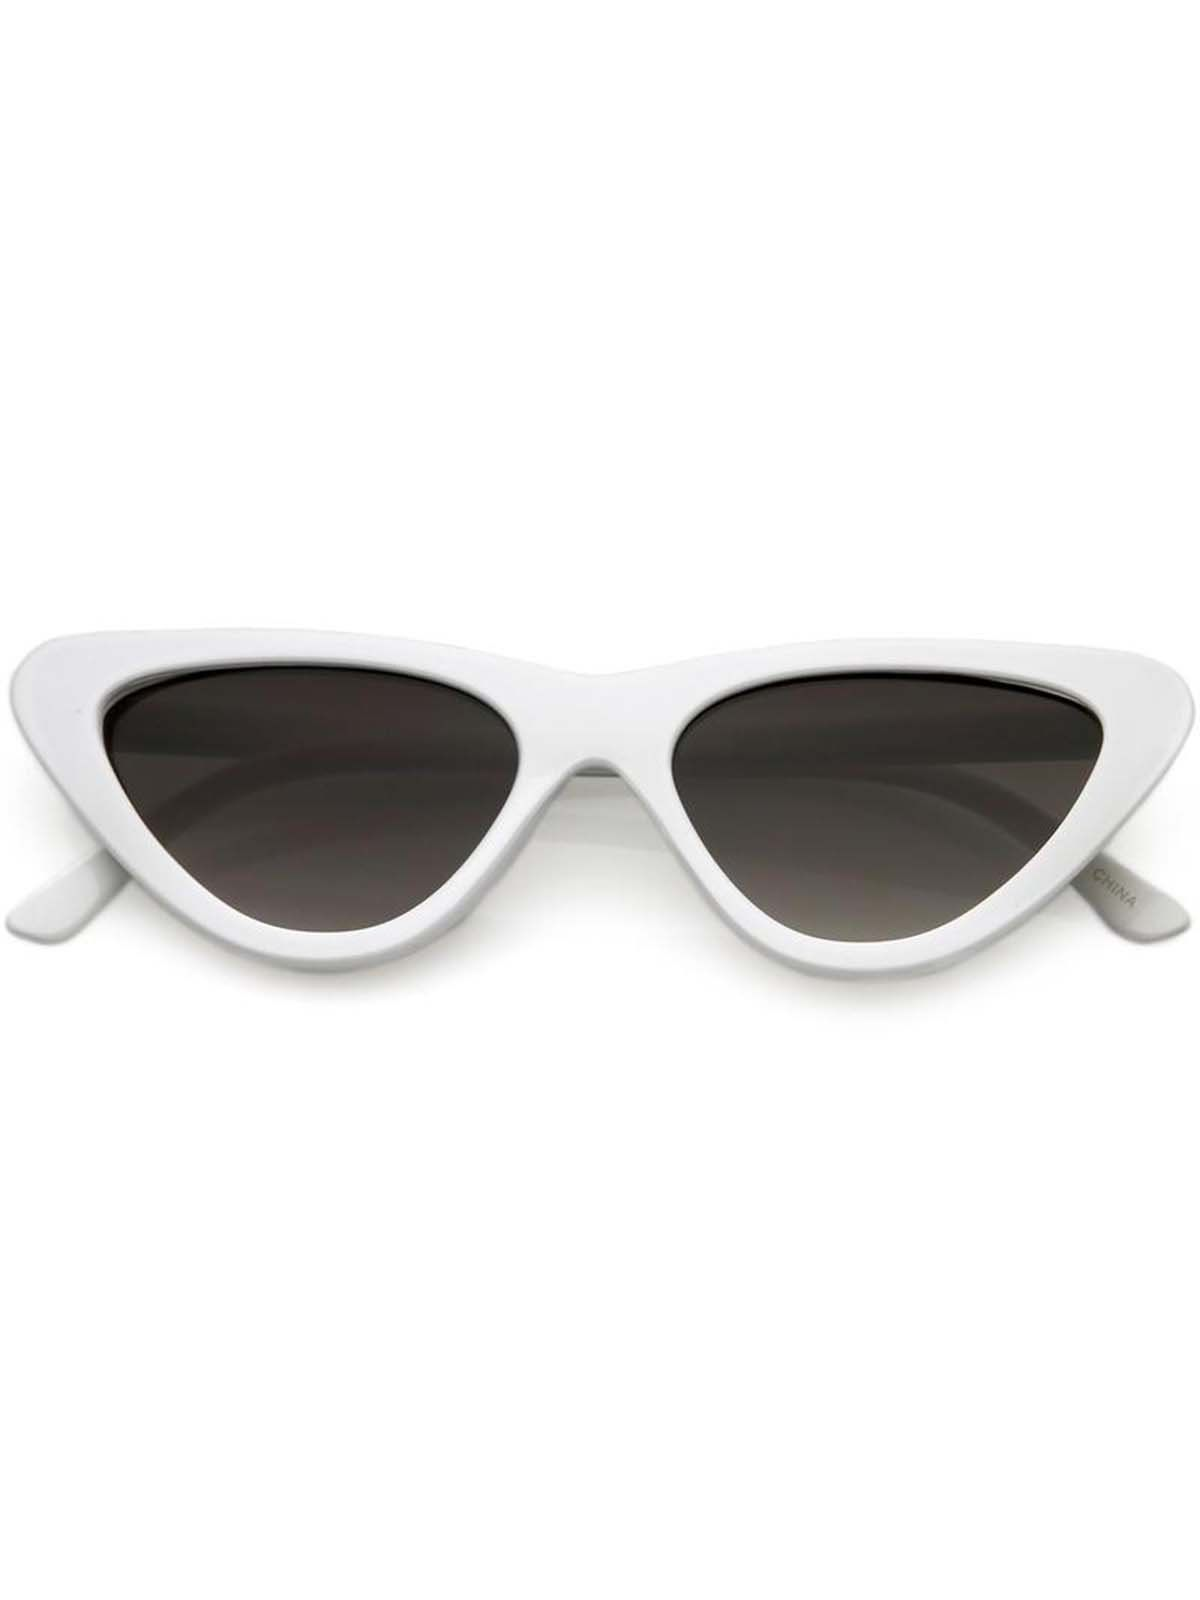 Óculos Cat Eye 77 Branco     Os óculos vintage que toda fashion girl  precisa ter. 1e11eb8776